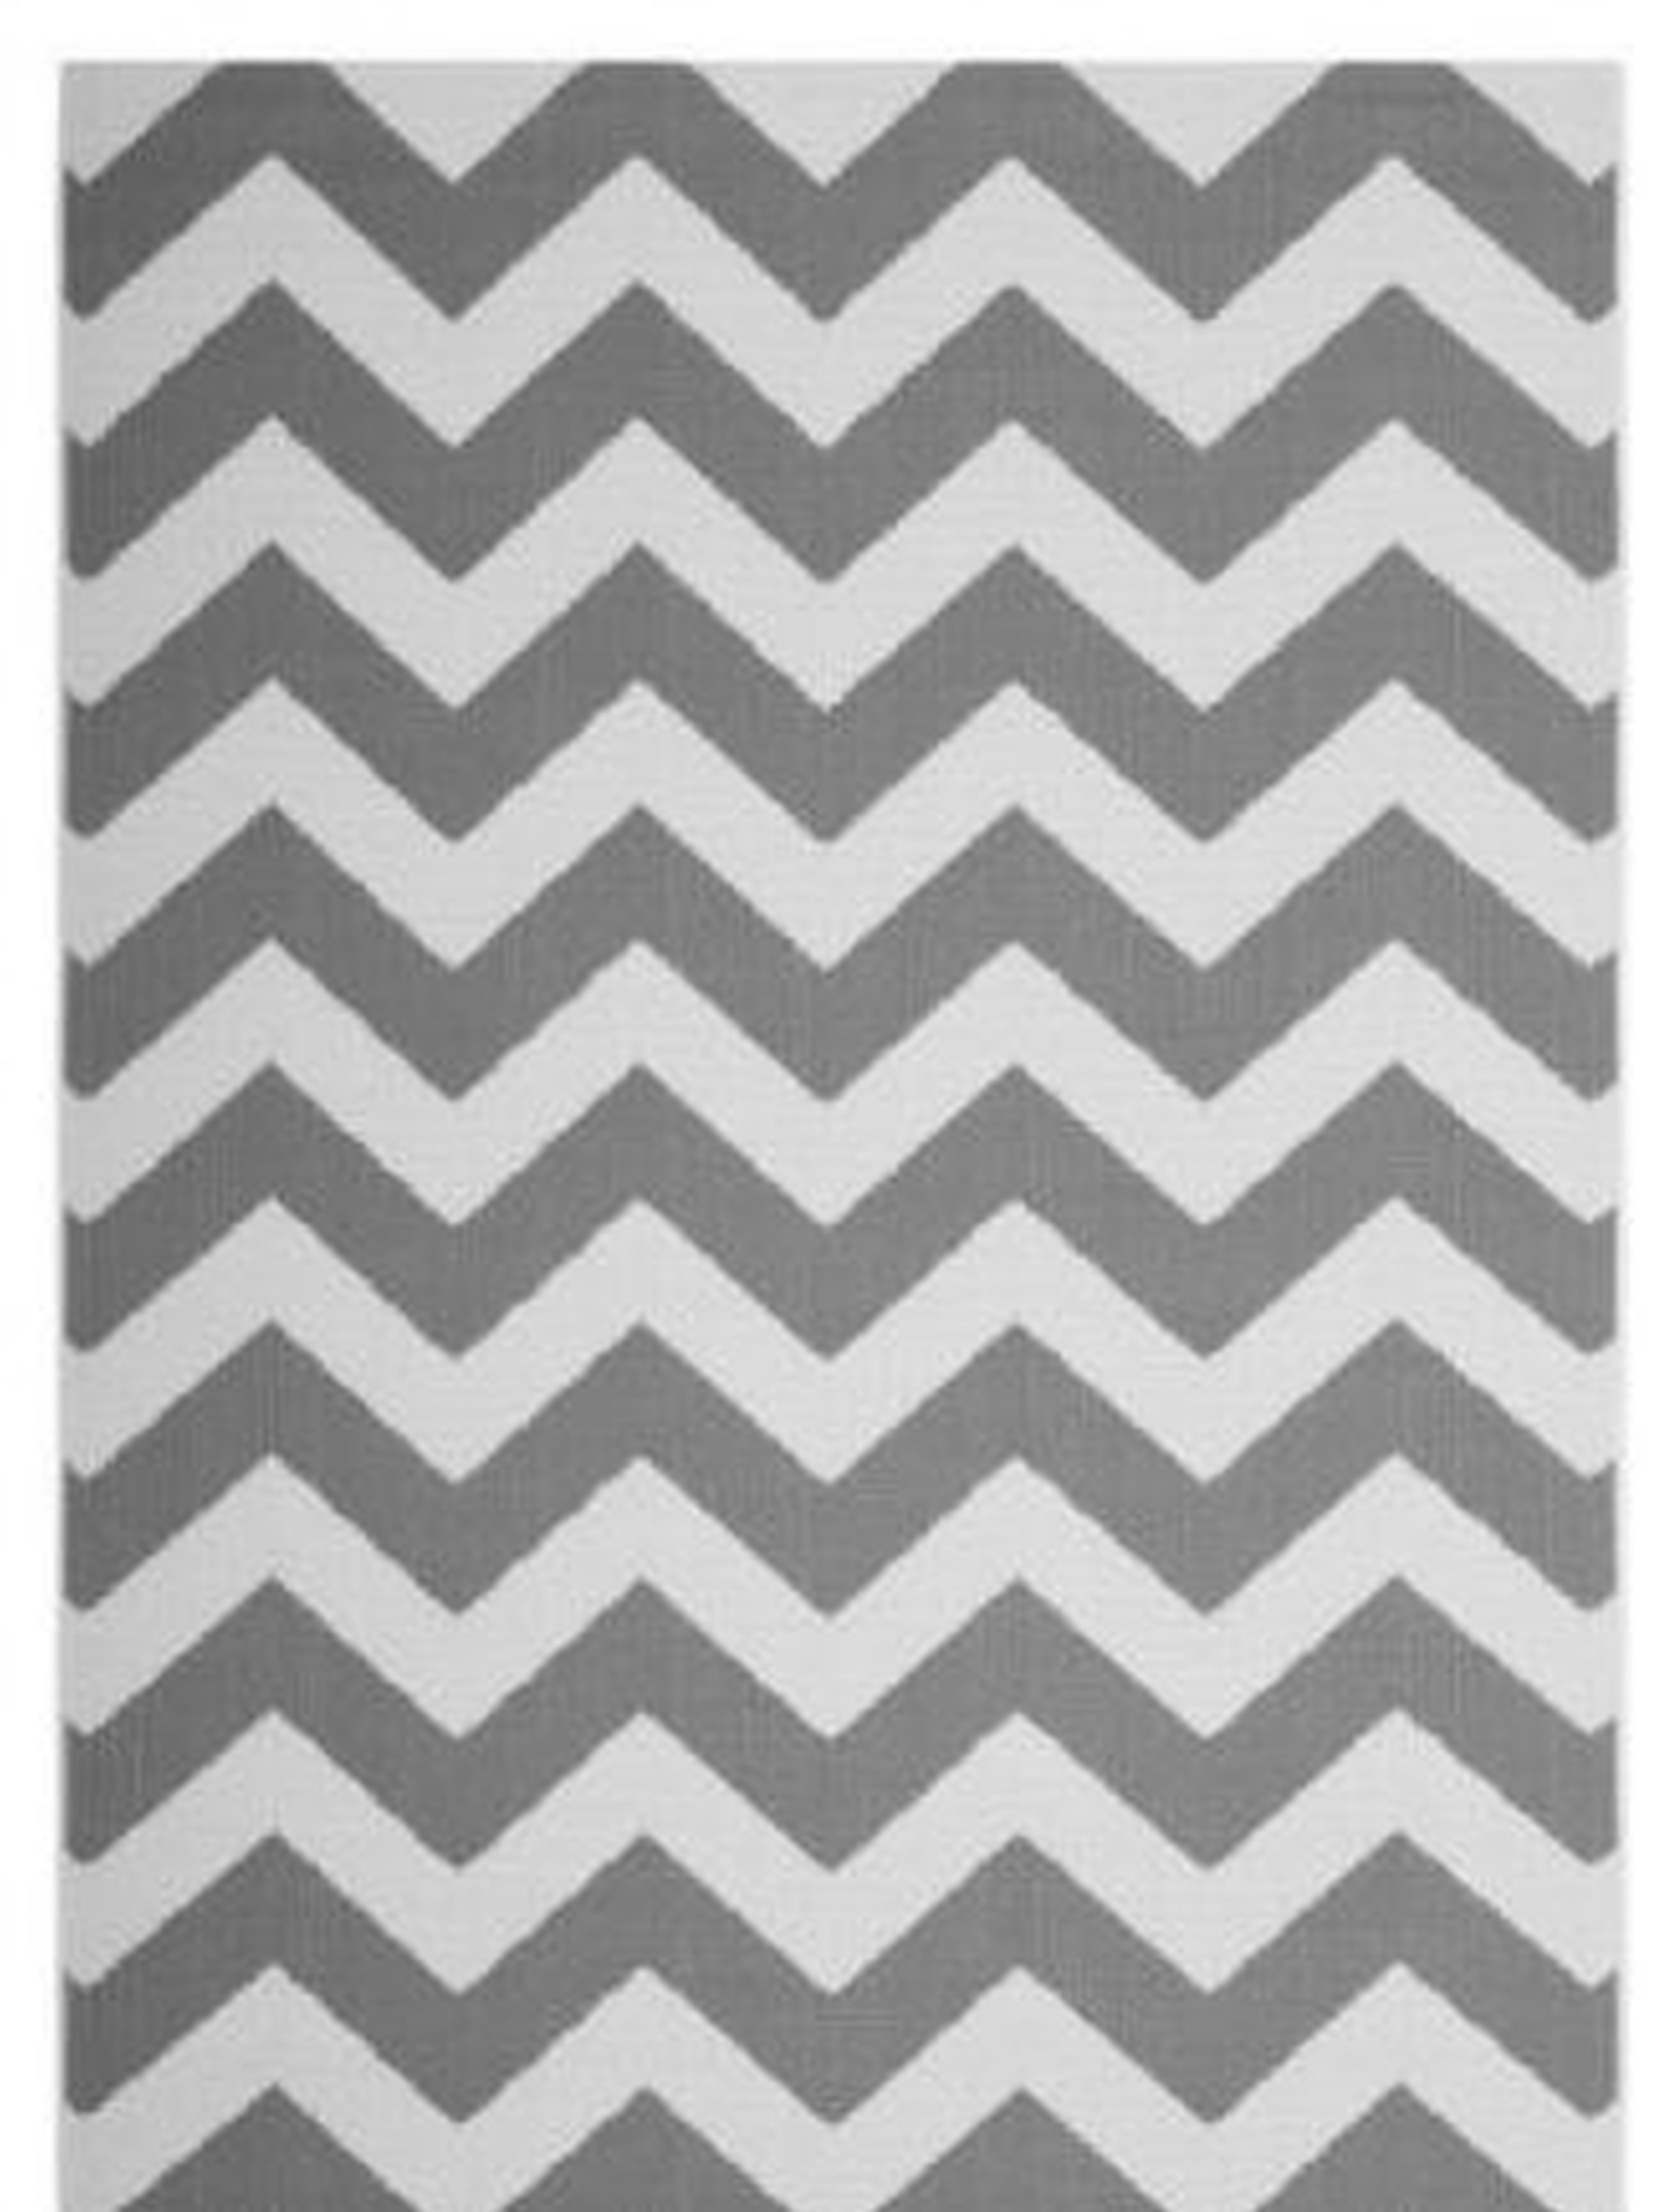 Chevron Rug Decor Astonishing Chevron Rug For Floor Decoration Intended For Black And Grey Chevron Rugs (Image 4 of 15)